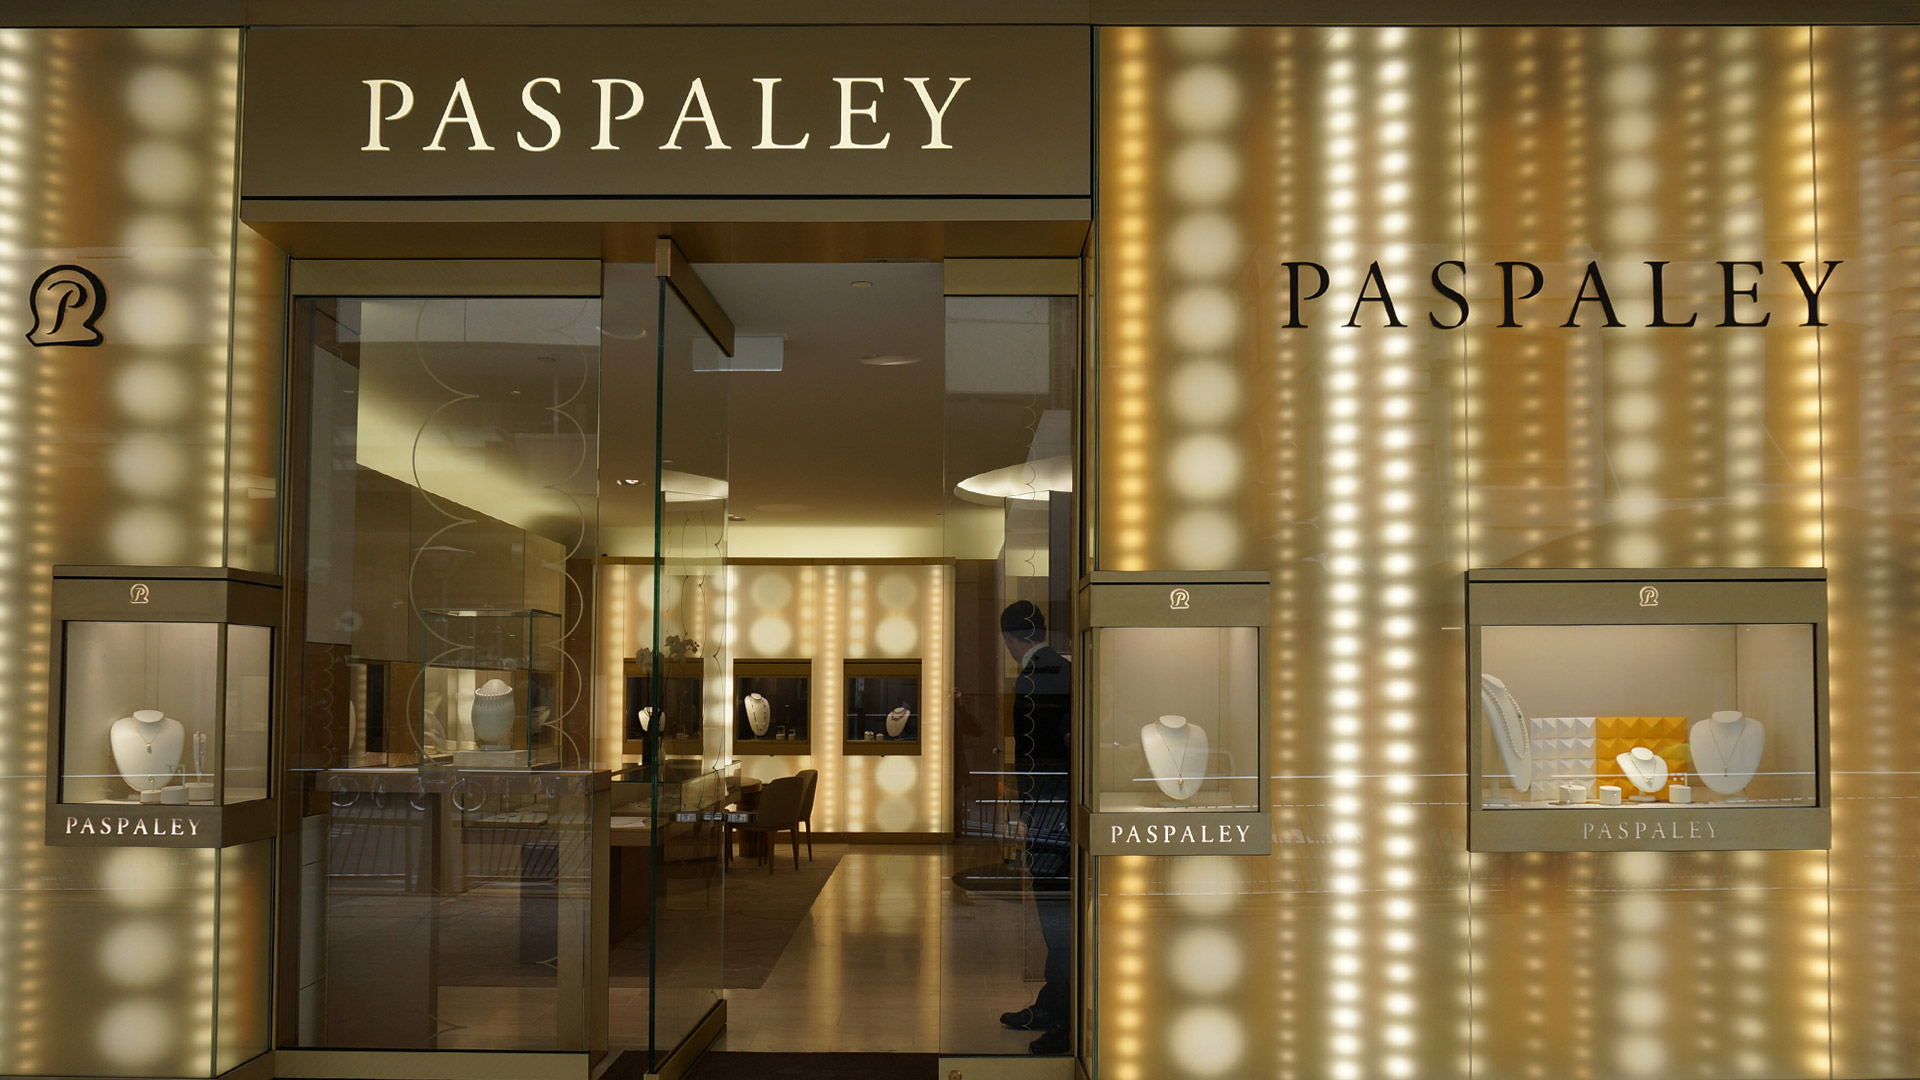 Lighting Shops Brisbane Paspaley Dubai Australia Lighting Specialists Image Gallery